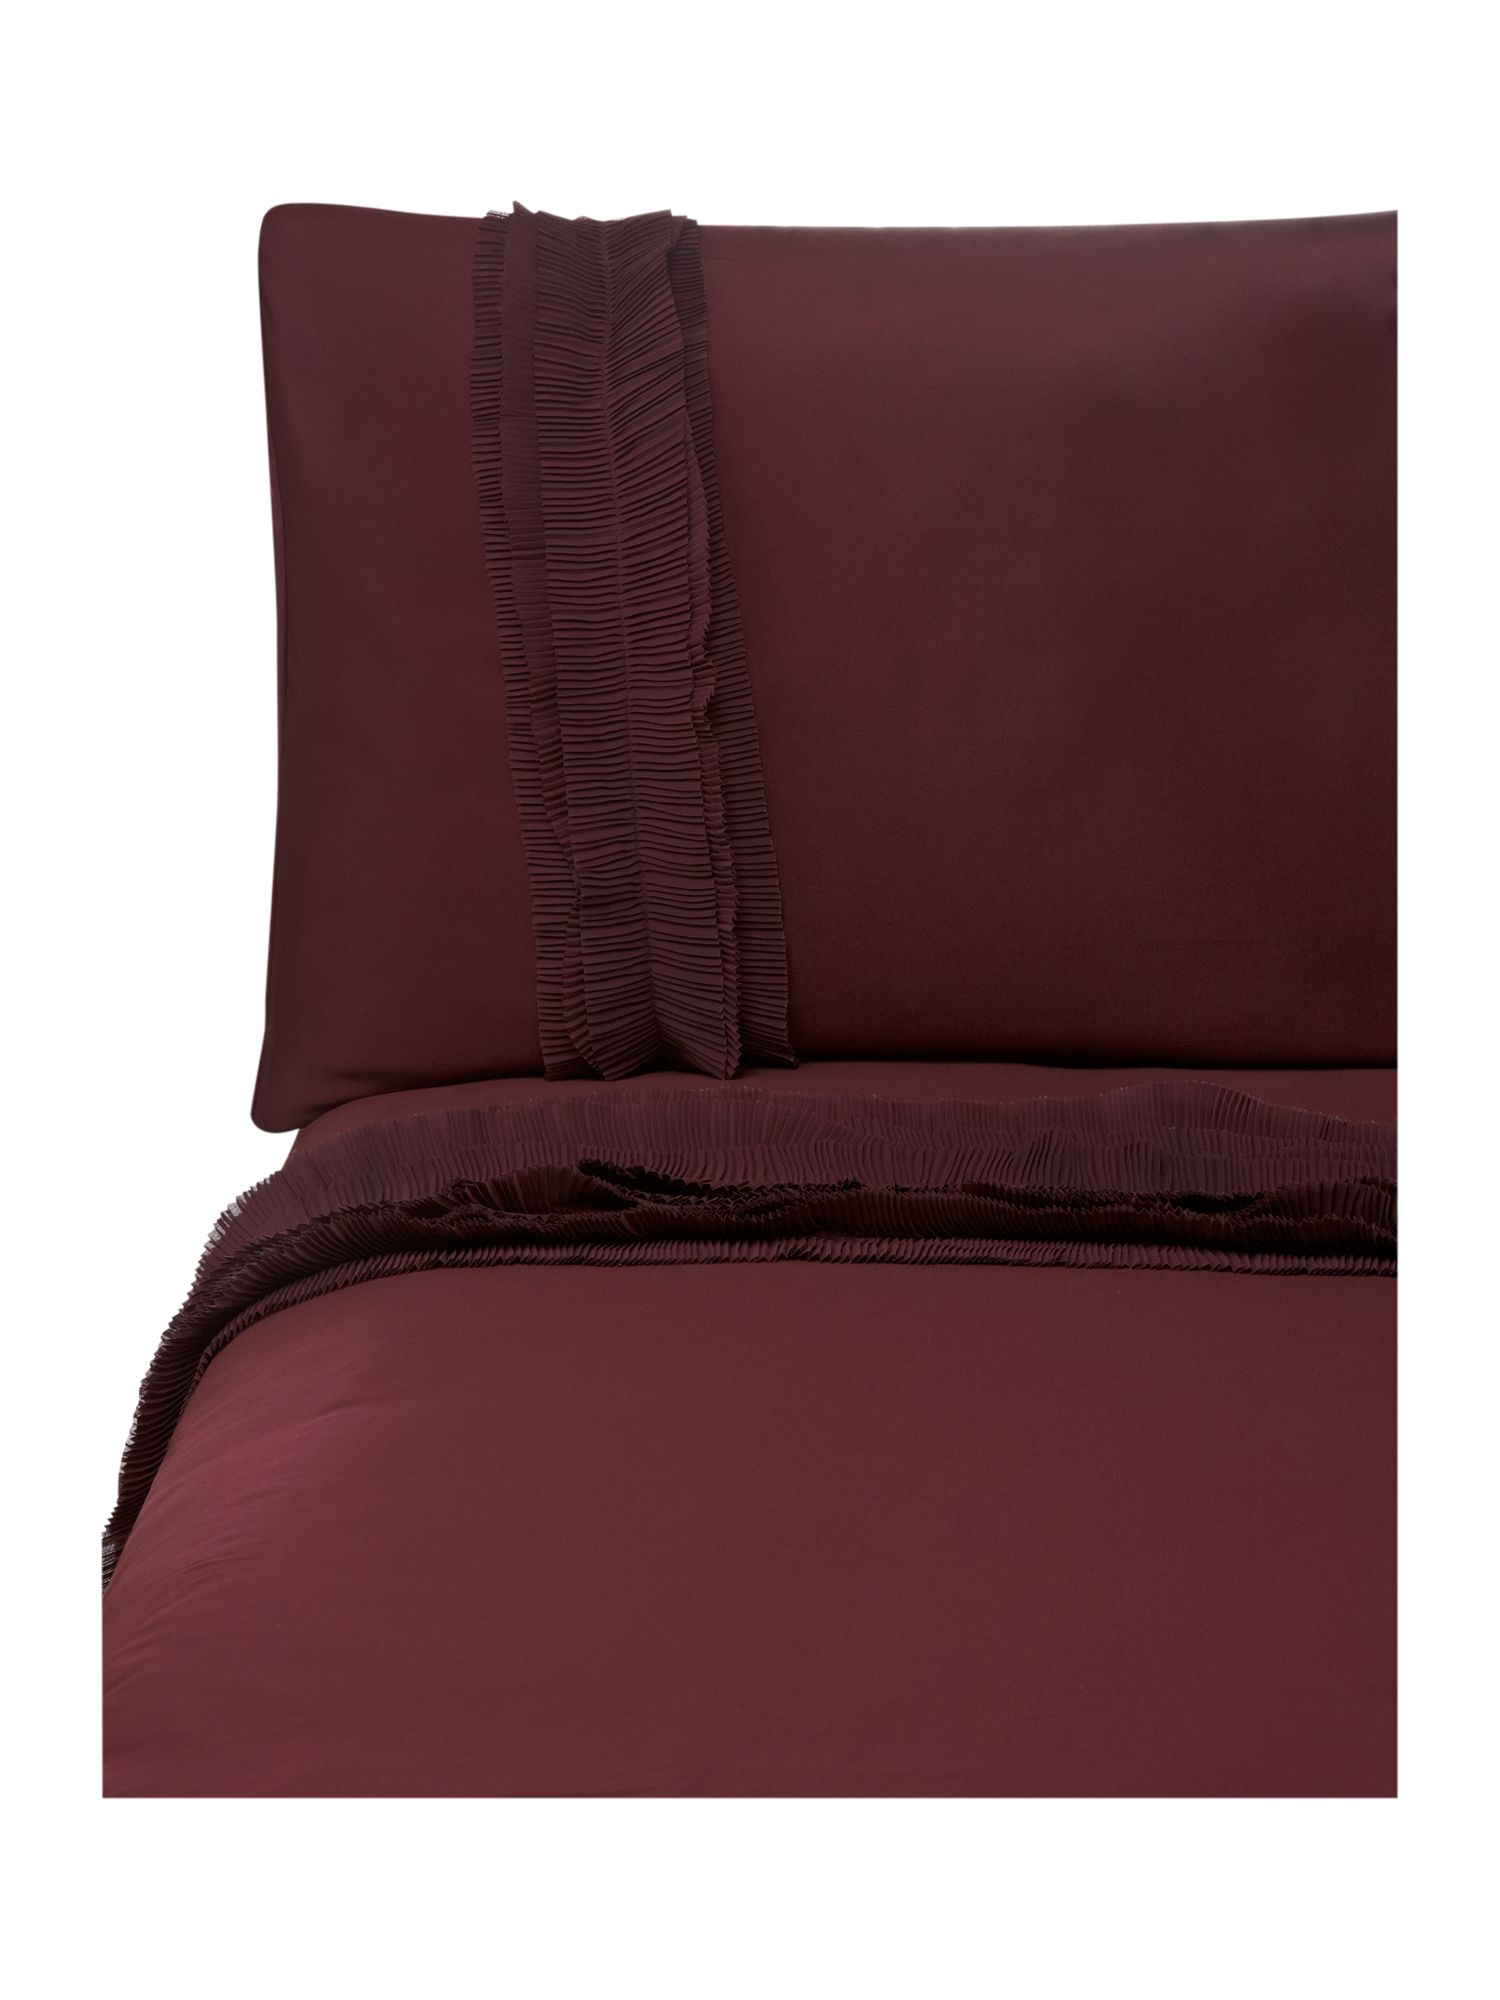 Ruffles bed linen in burgundy